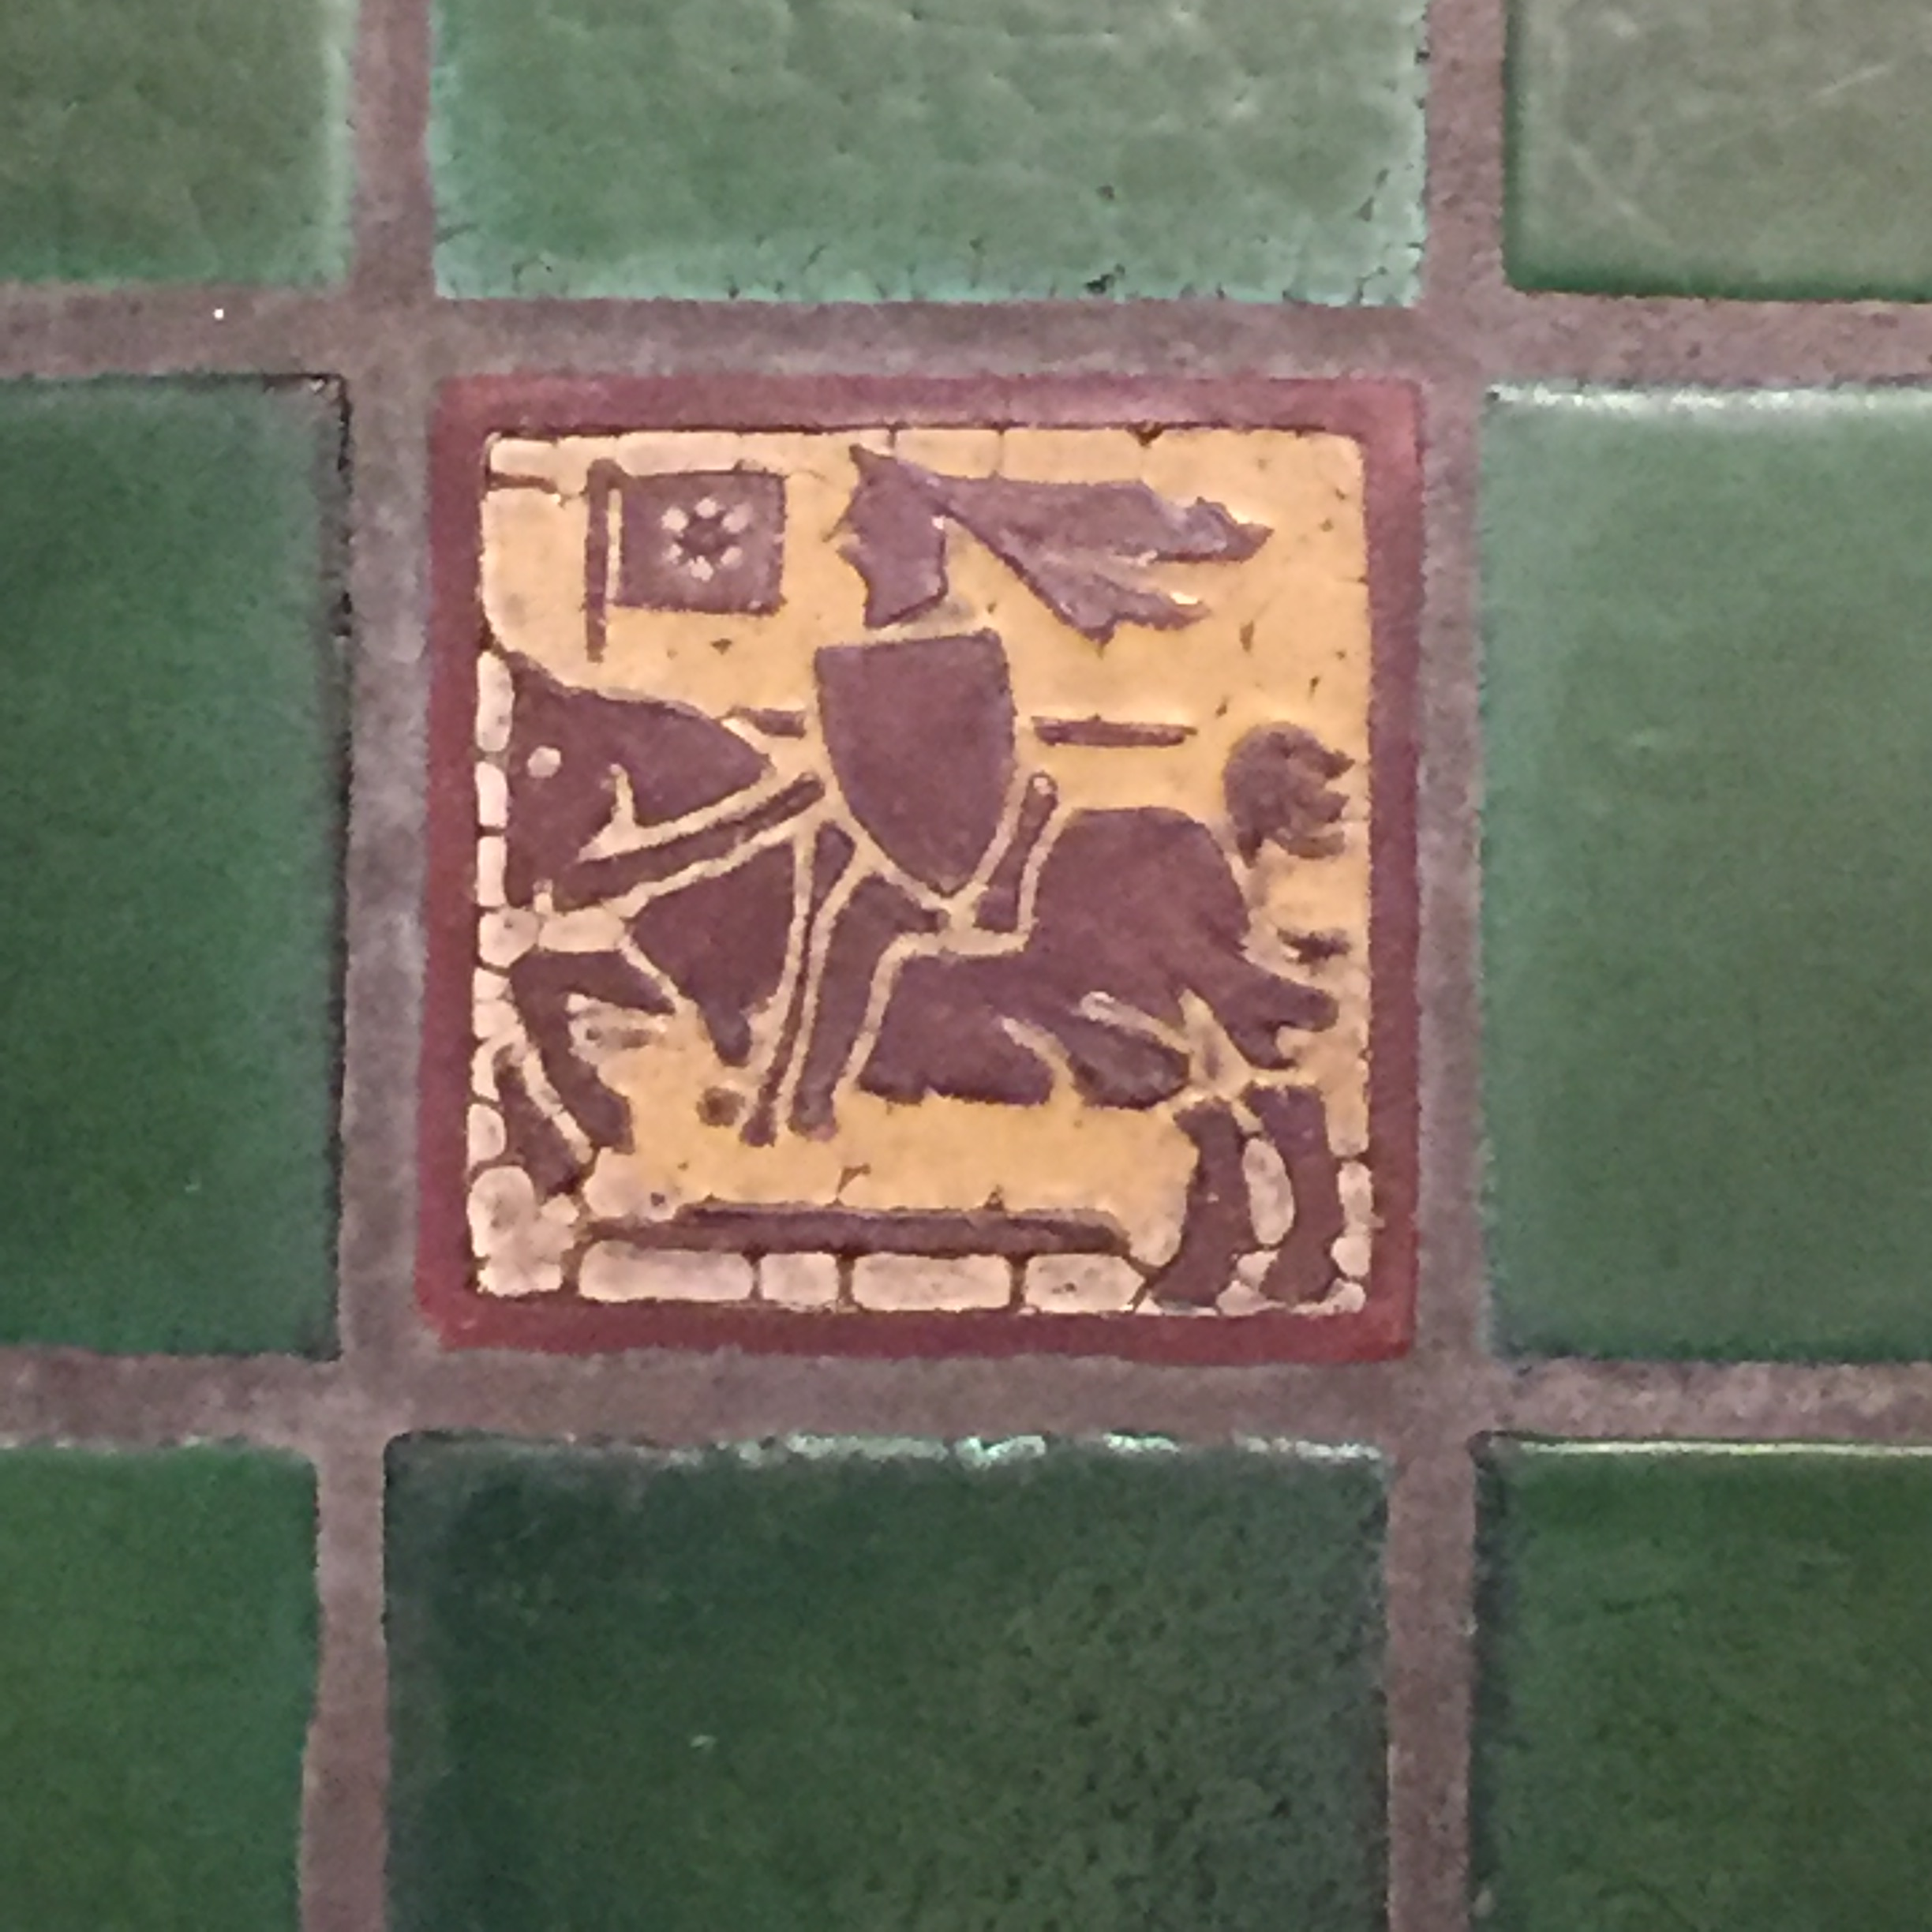 Floor tile showing a knight on horseback (still decorating a floor), cr. 1910, Grueby Faience Company, U.S.A.